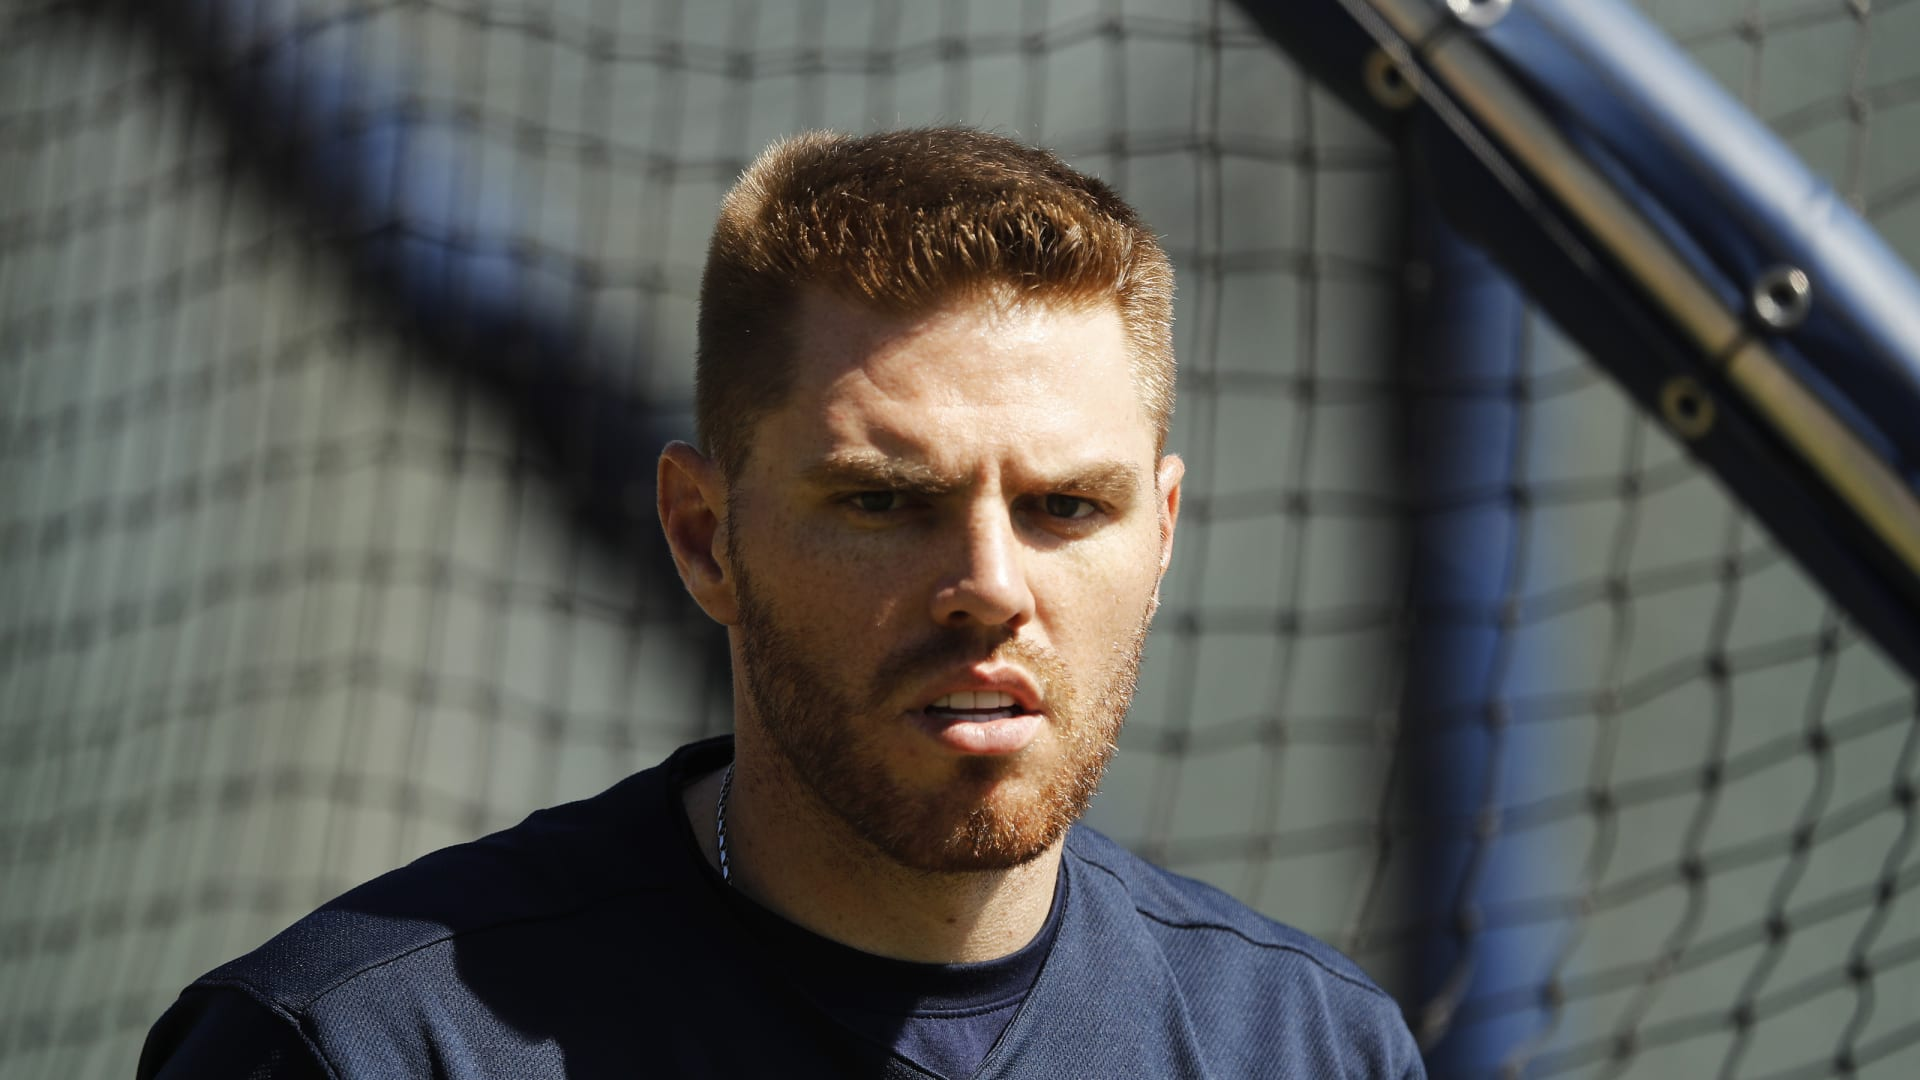 Atlanta Braves Freddie Freeman returns; Yasiel Puig departs